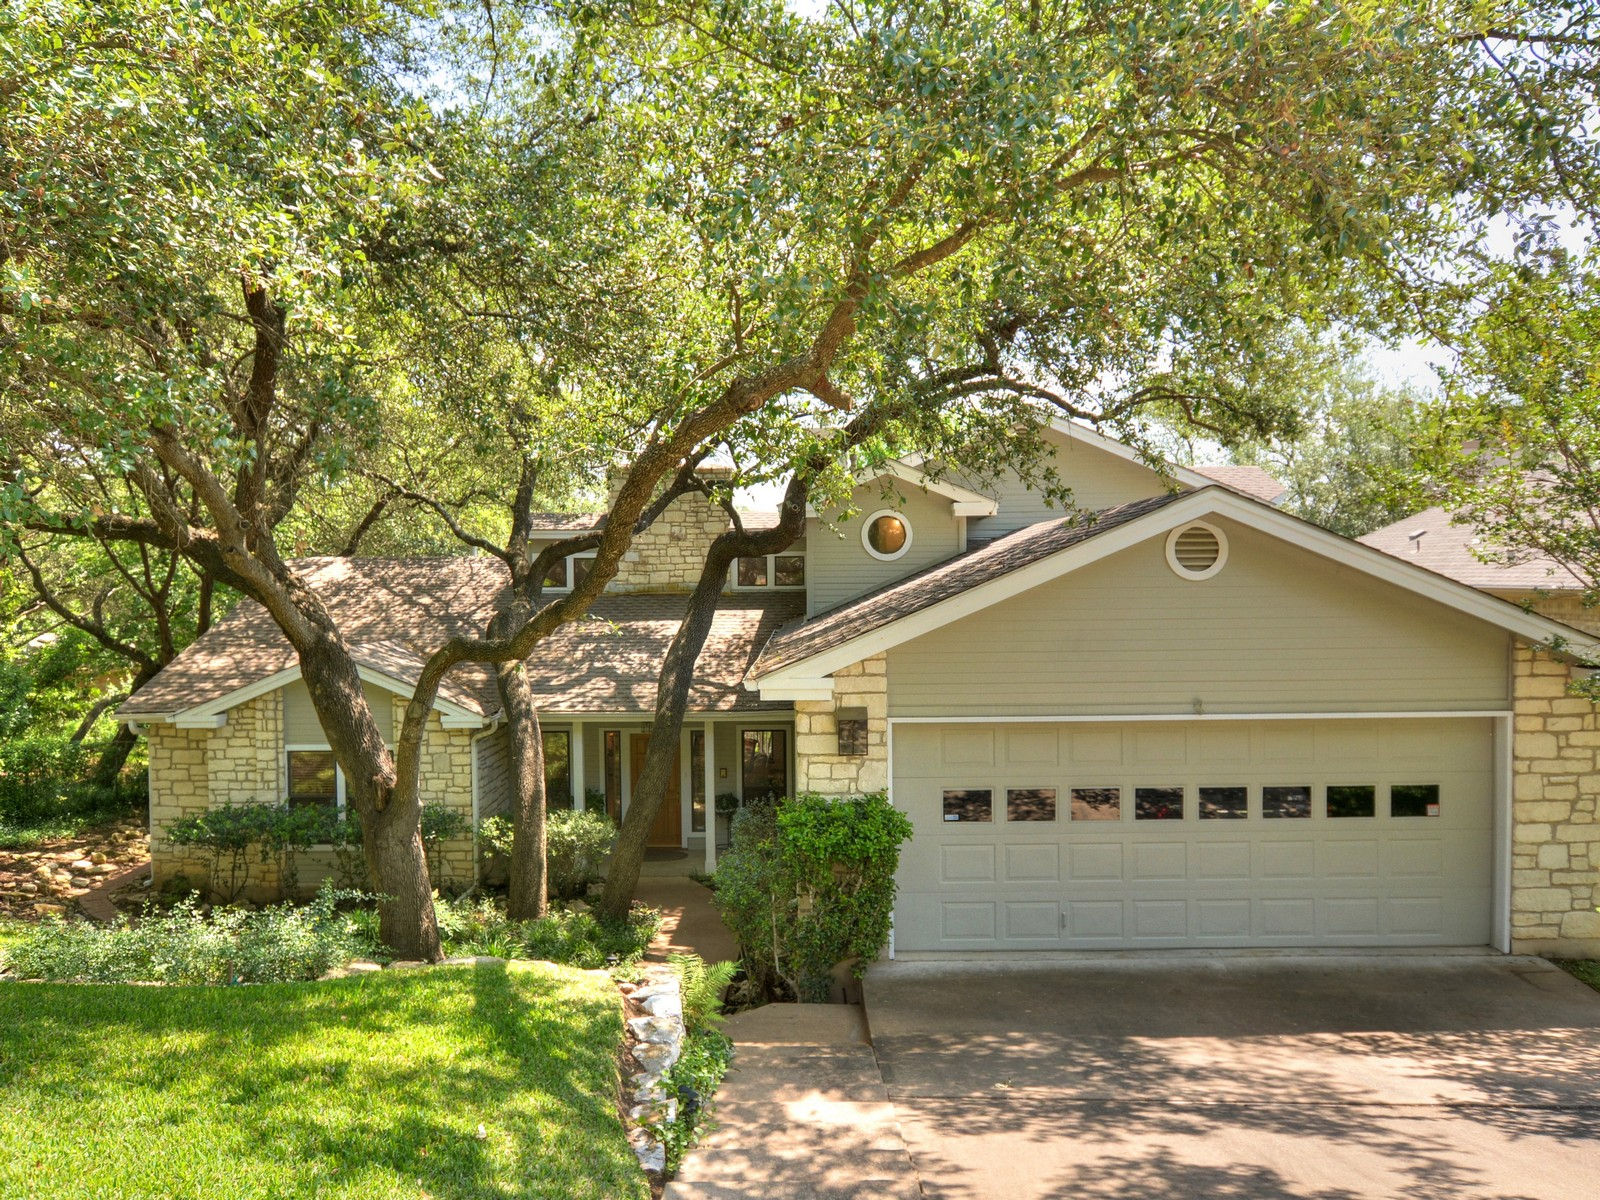 Single Family Home for Sale at Tree Filled Lot 6009 Bon Terra Dr Austin, Texas 78731 United States